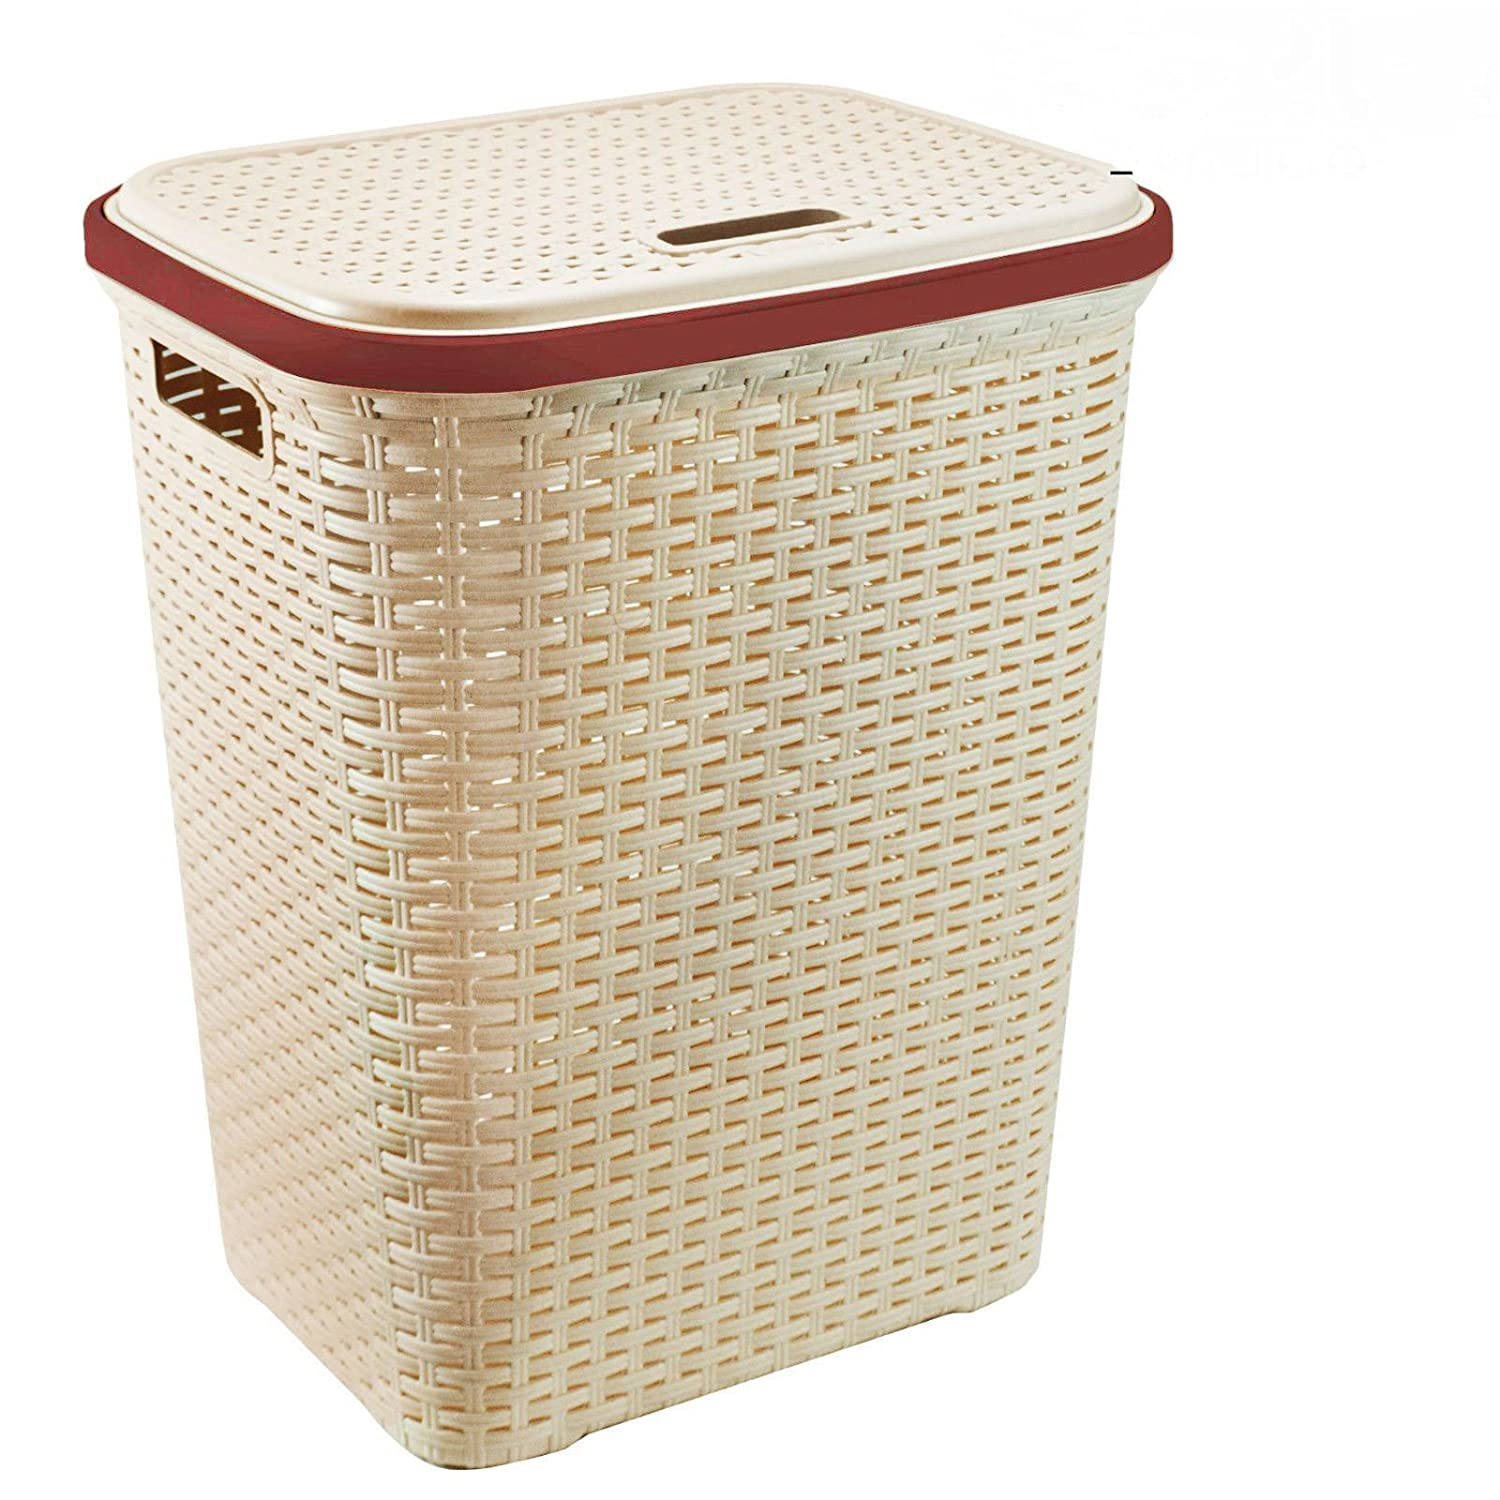 Chocolate Home In Style 56L Plastic Rattan Laundry Basket Clothes Hamper Linen Storage Lidded Bin Box Laundry Supplies Holder Tidy